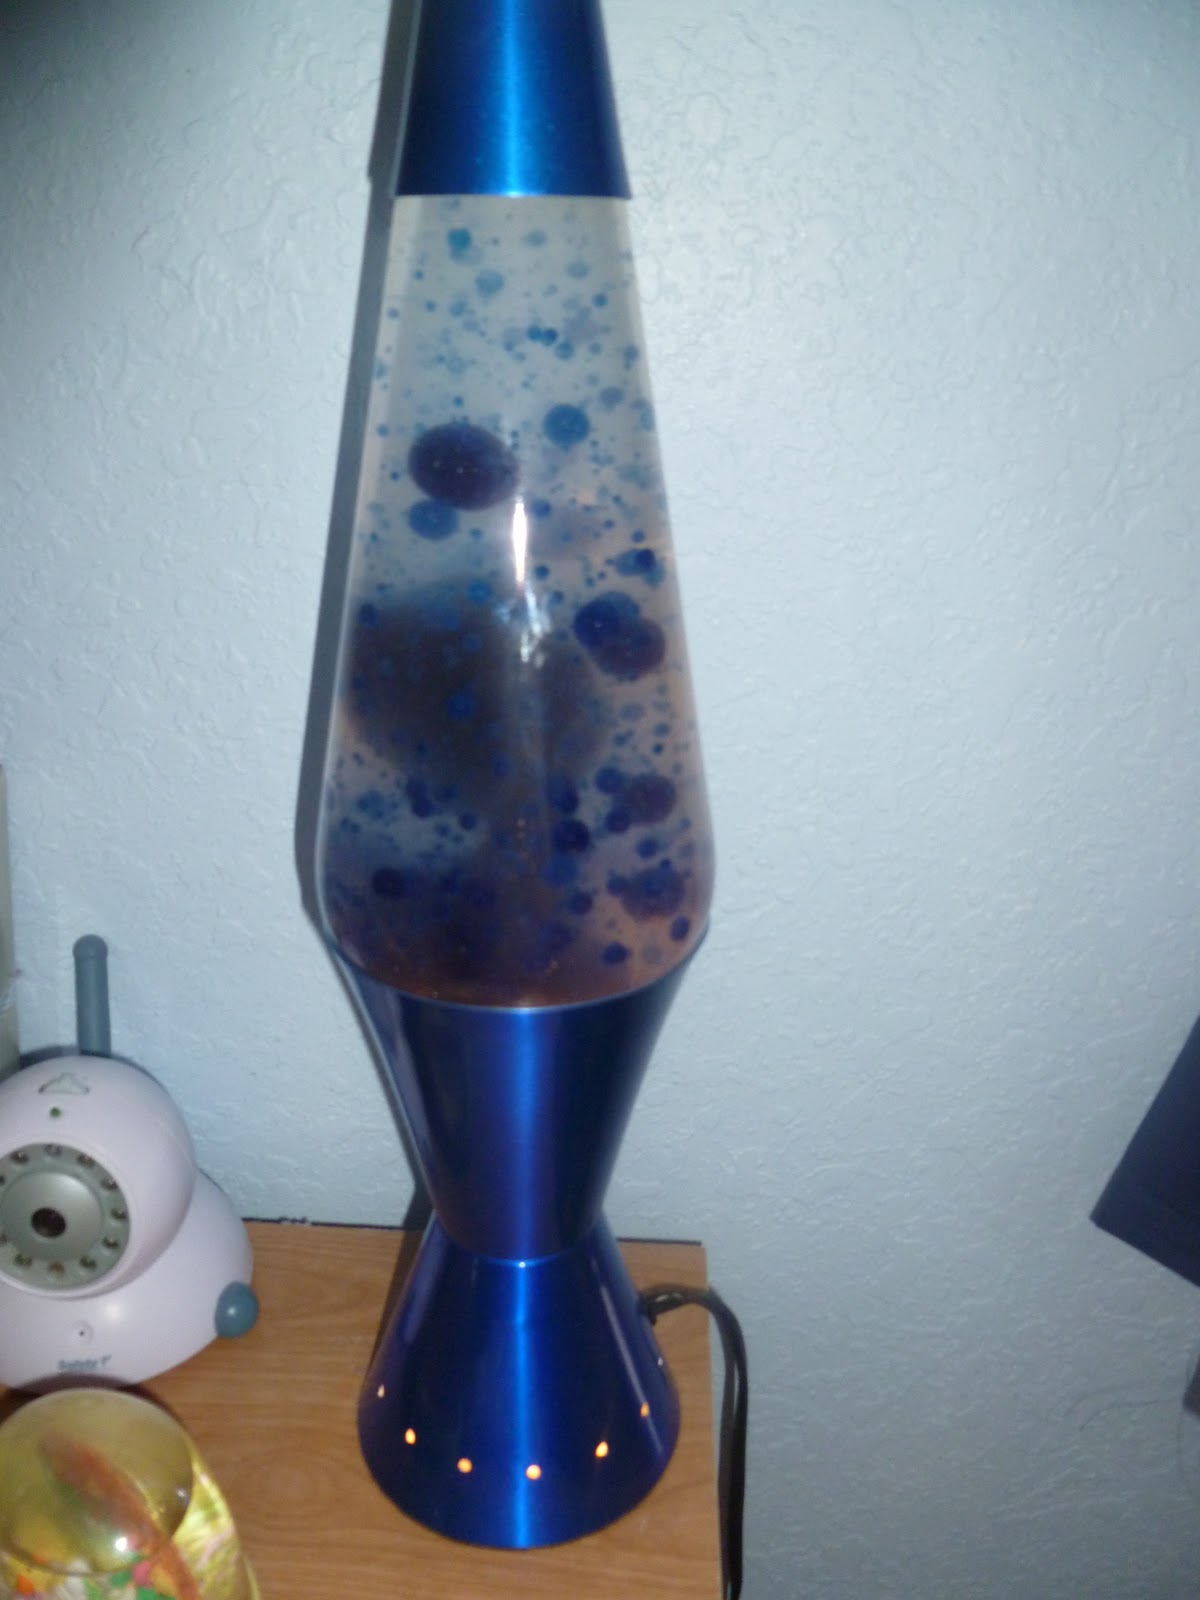 THE ORIGINAL LAVA LAMP REVIEW + GIVEAWAY - Mama to 6 Blessings